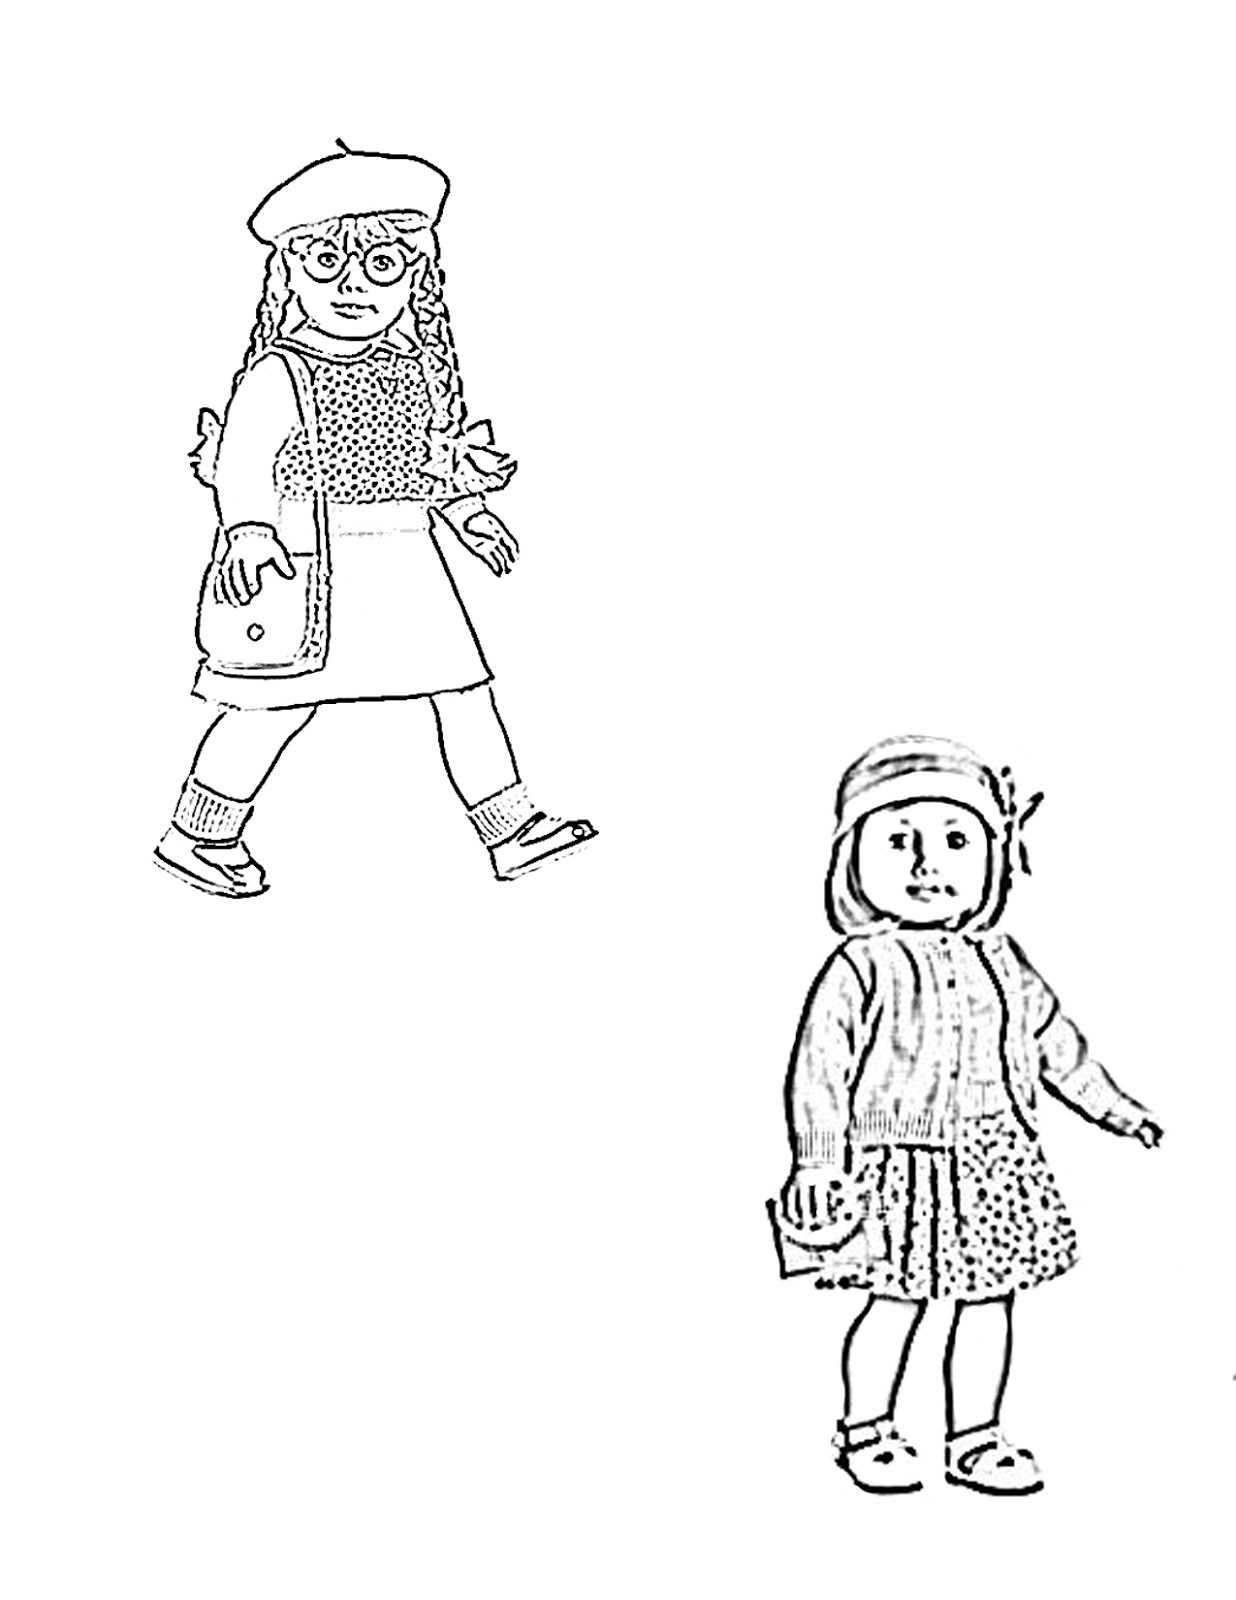 american girl doll coloring page american girl  coloring pages for kids and for adults page girl doll american coloring